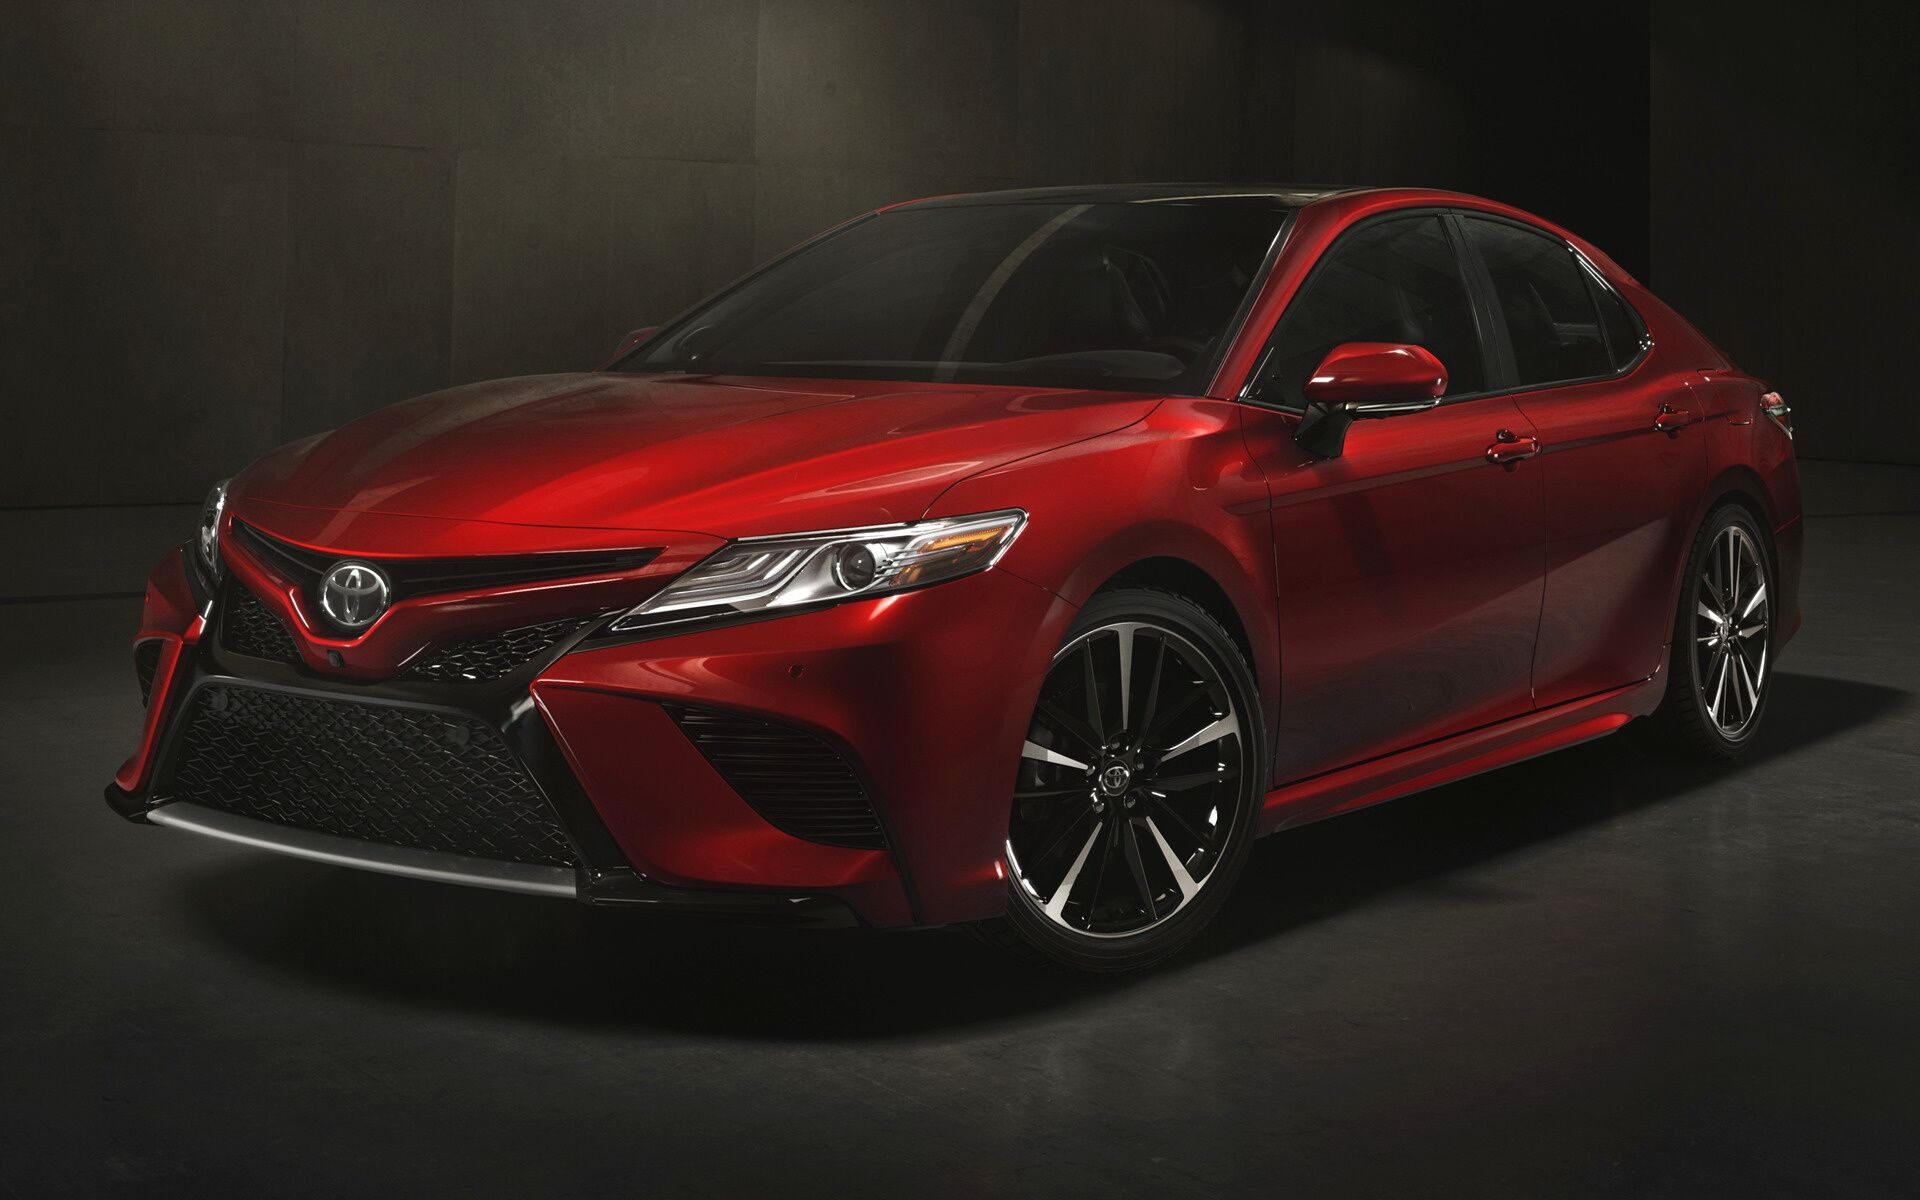 Brand New Engine The 2018 Toyota Camry Will Now Be Primarily Ed With An All Dynamic Force 2 5 Liter